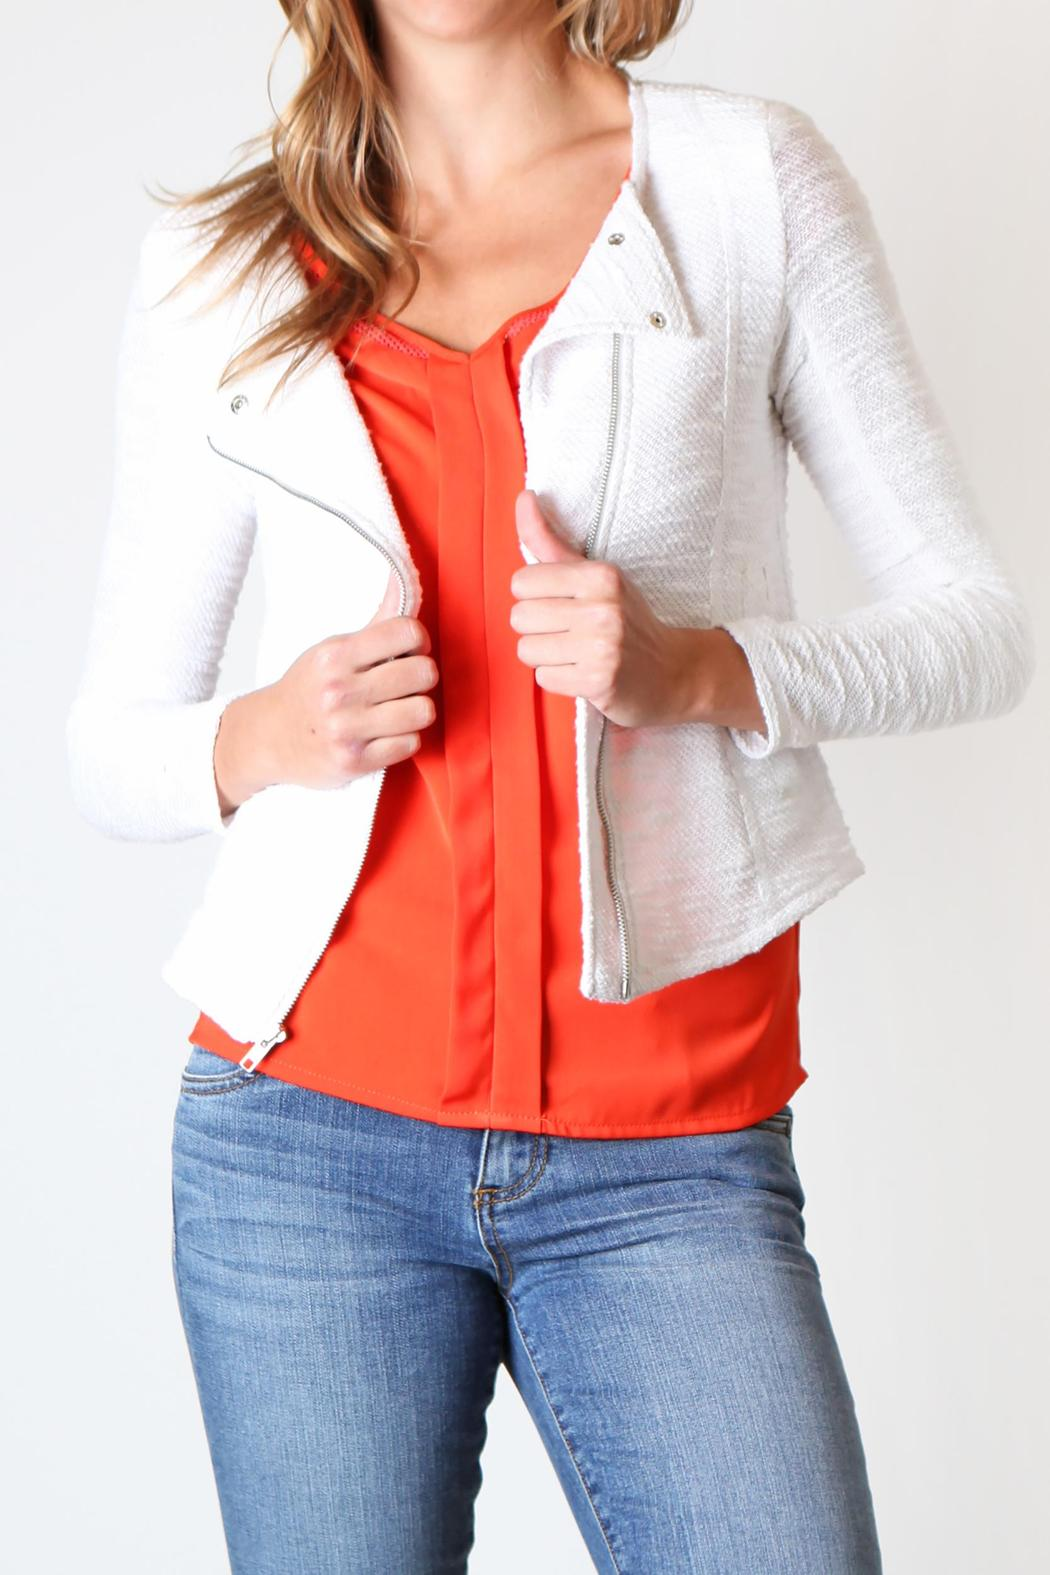 Kut from the Kloth Knit Moto Jacket from California by Boutique 120 u2014 Shoptiques